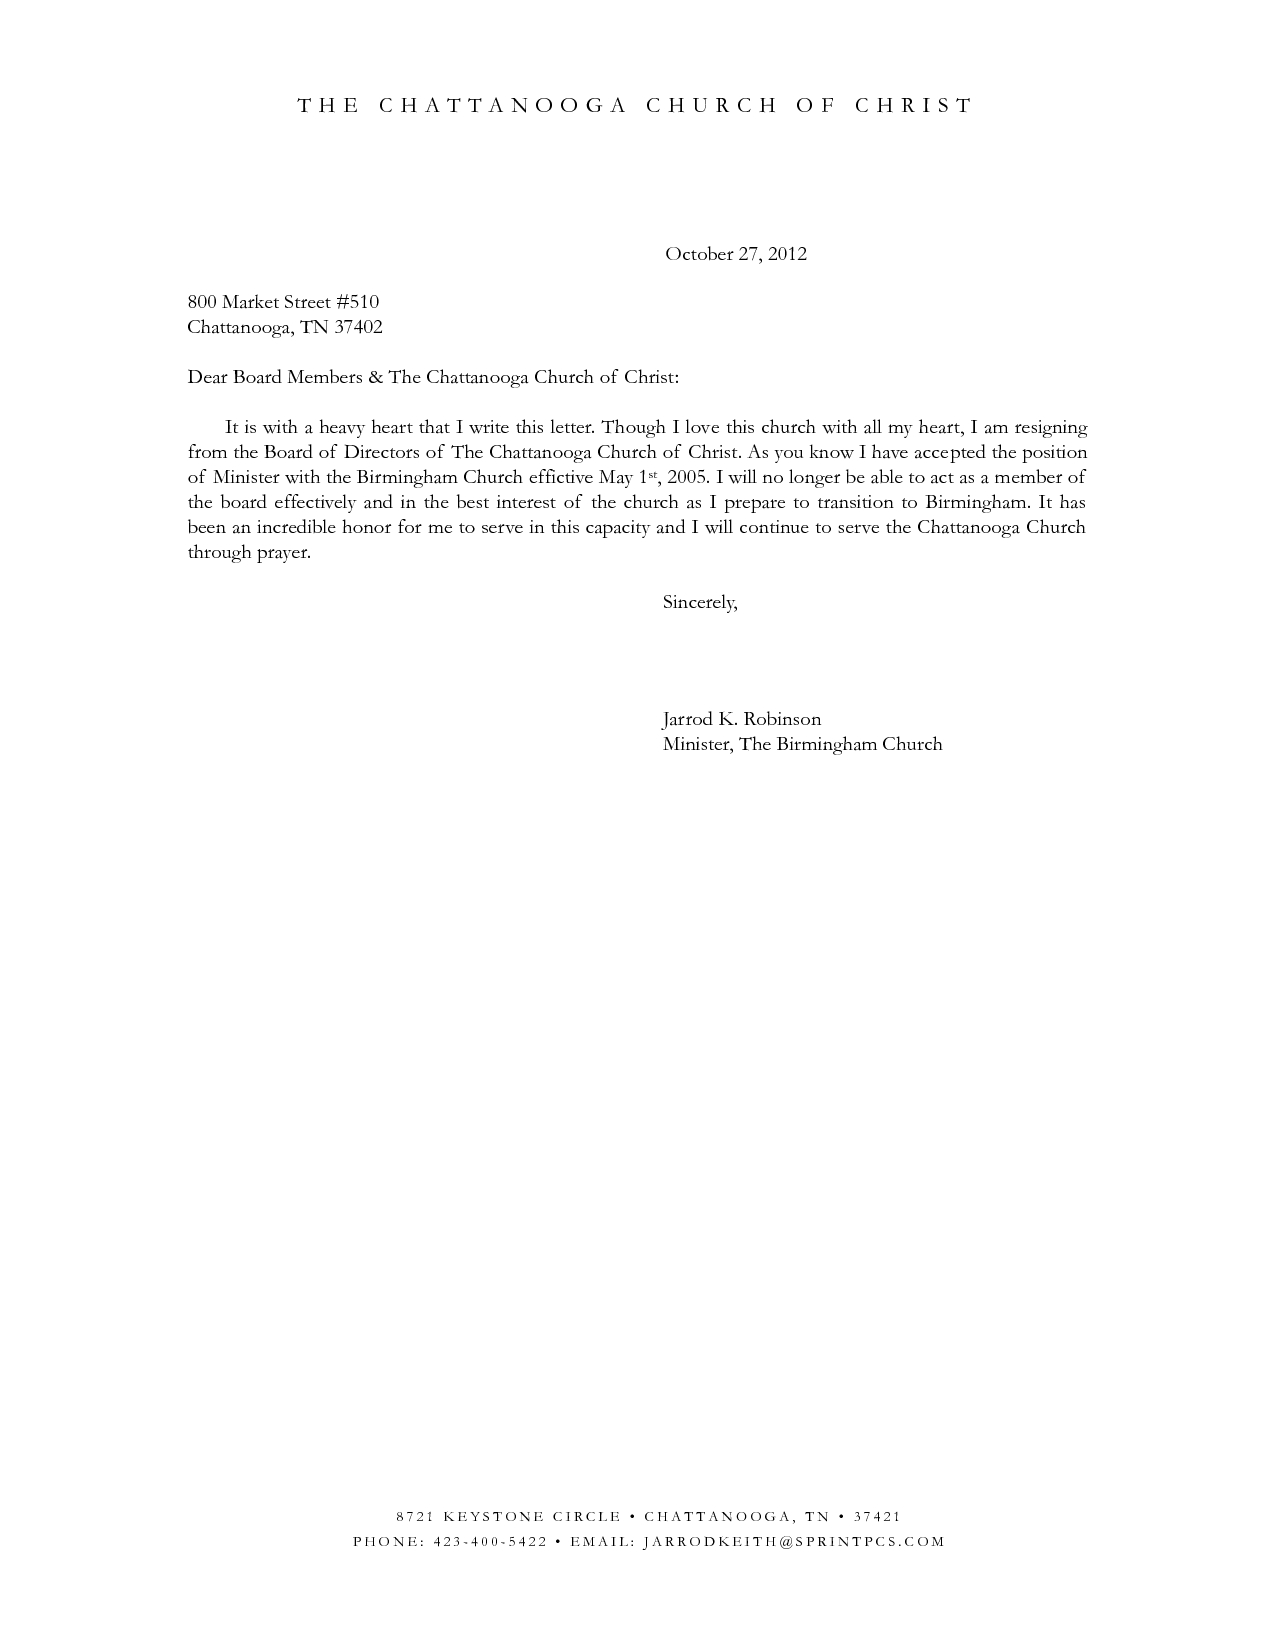 Resignation Letter Template Word - New Word Resignation Letter Template